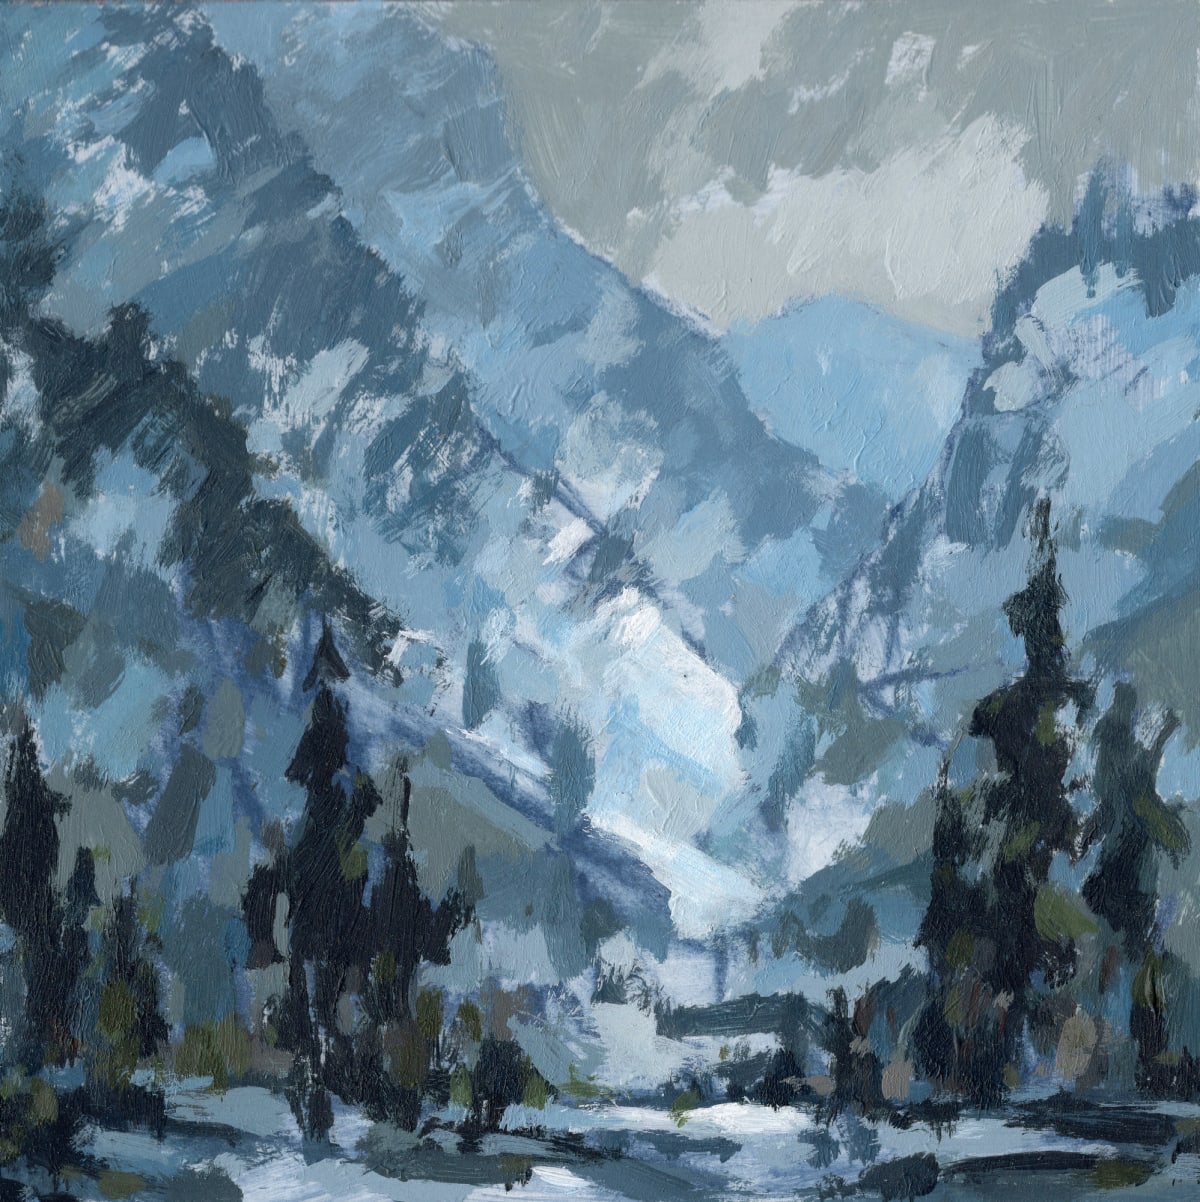 Jared Shear, Icy Canyon, 2019